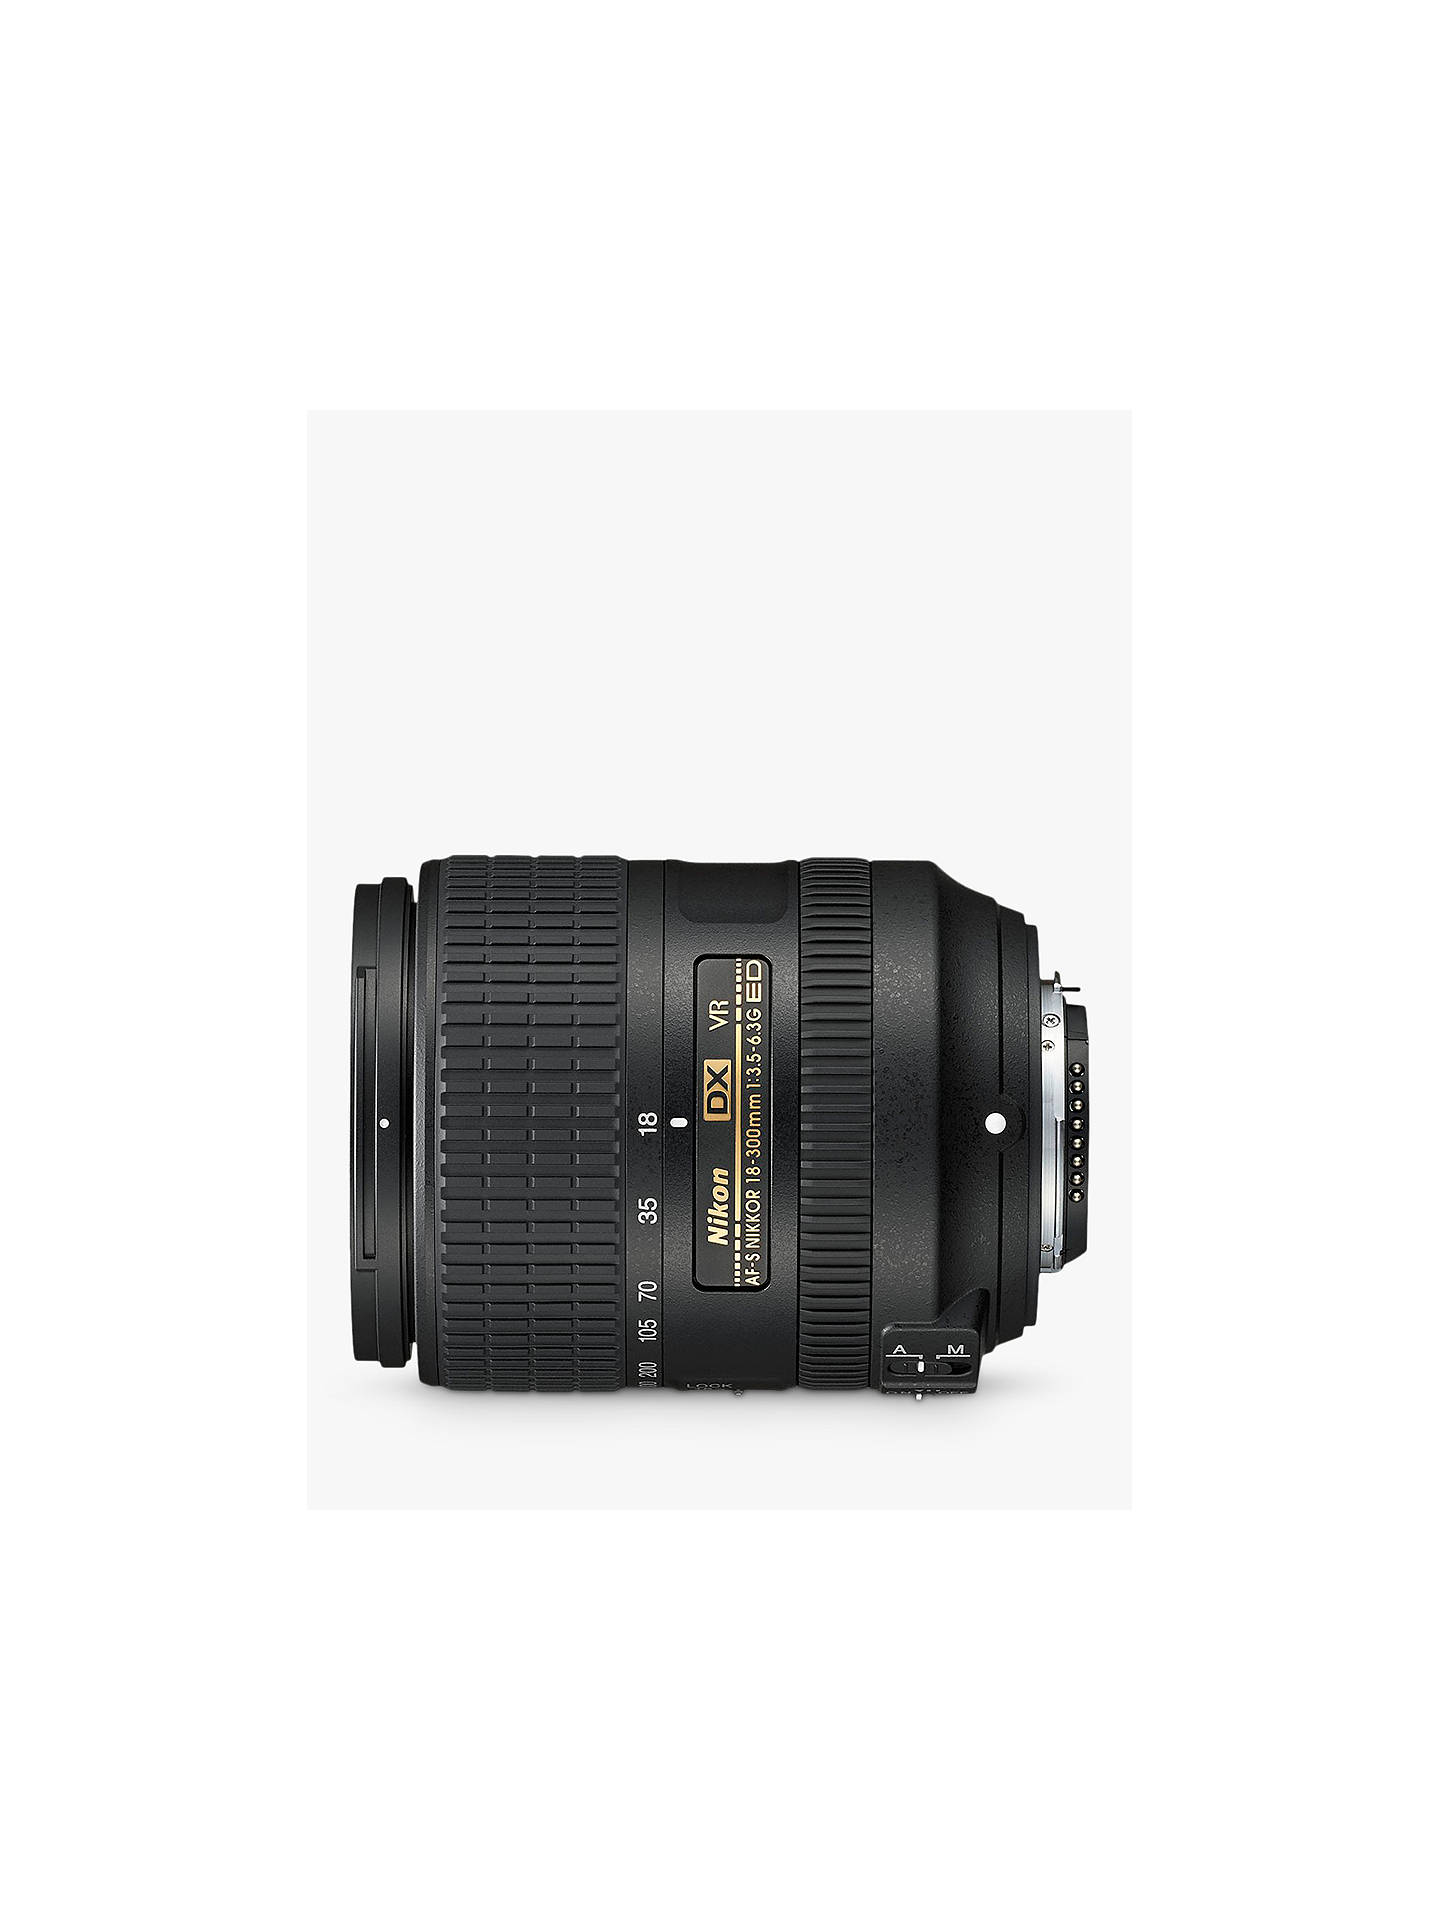 Buy Nikon AF-S DX NIKKOR 18-300mm F/3.5-6.3G ED VR Wide Angle & Telephoto Lens, Black Online at johnlewis.com